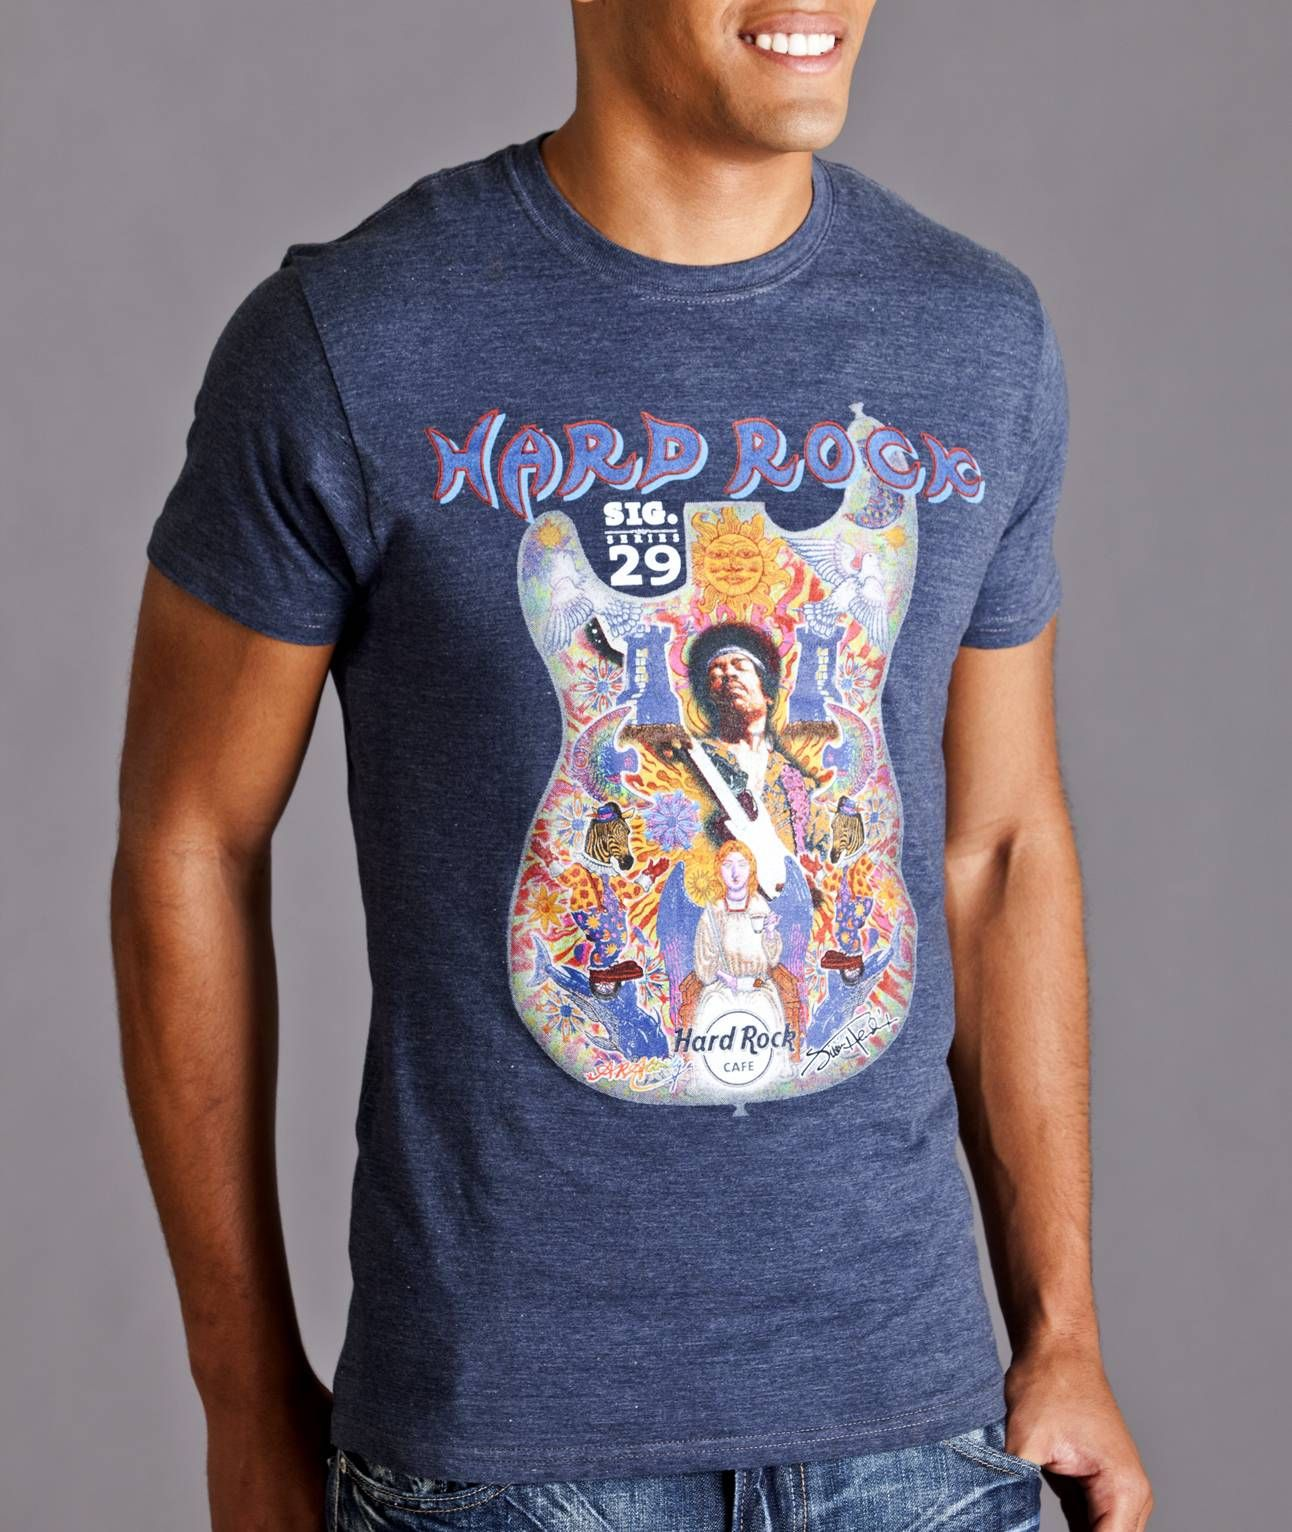 Design t shirt hard rock cafe - Find This Pin And More On Hard Rock Merchandise Collectibles